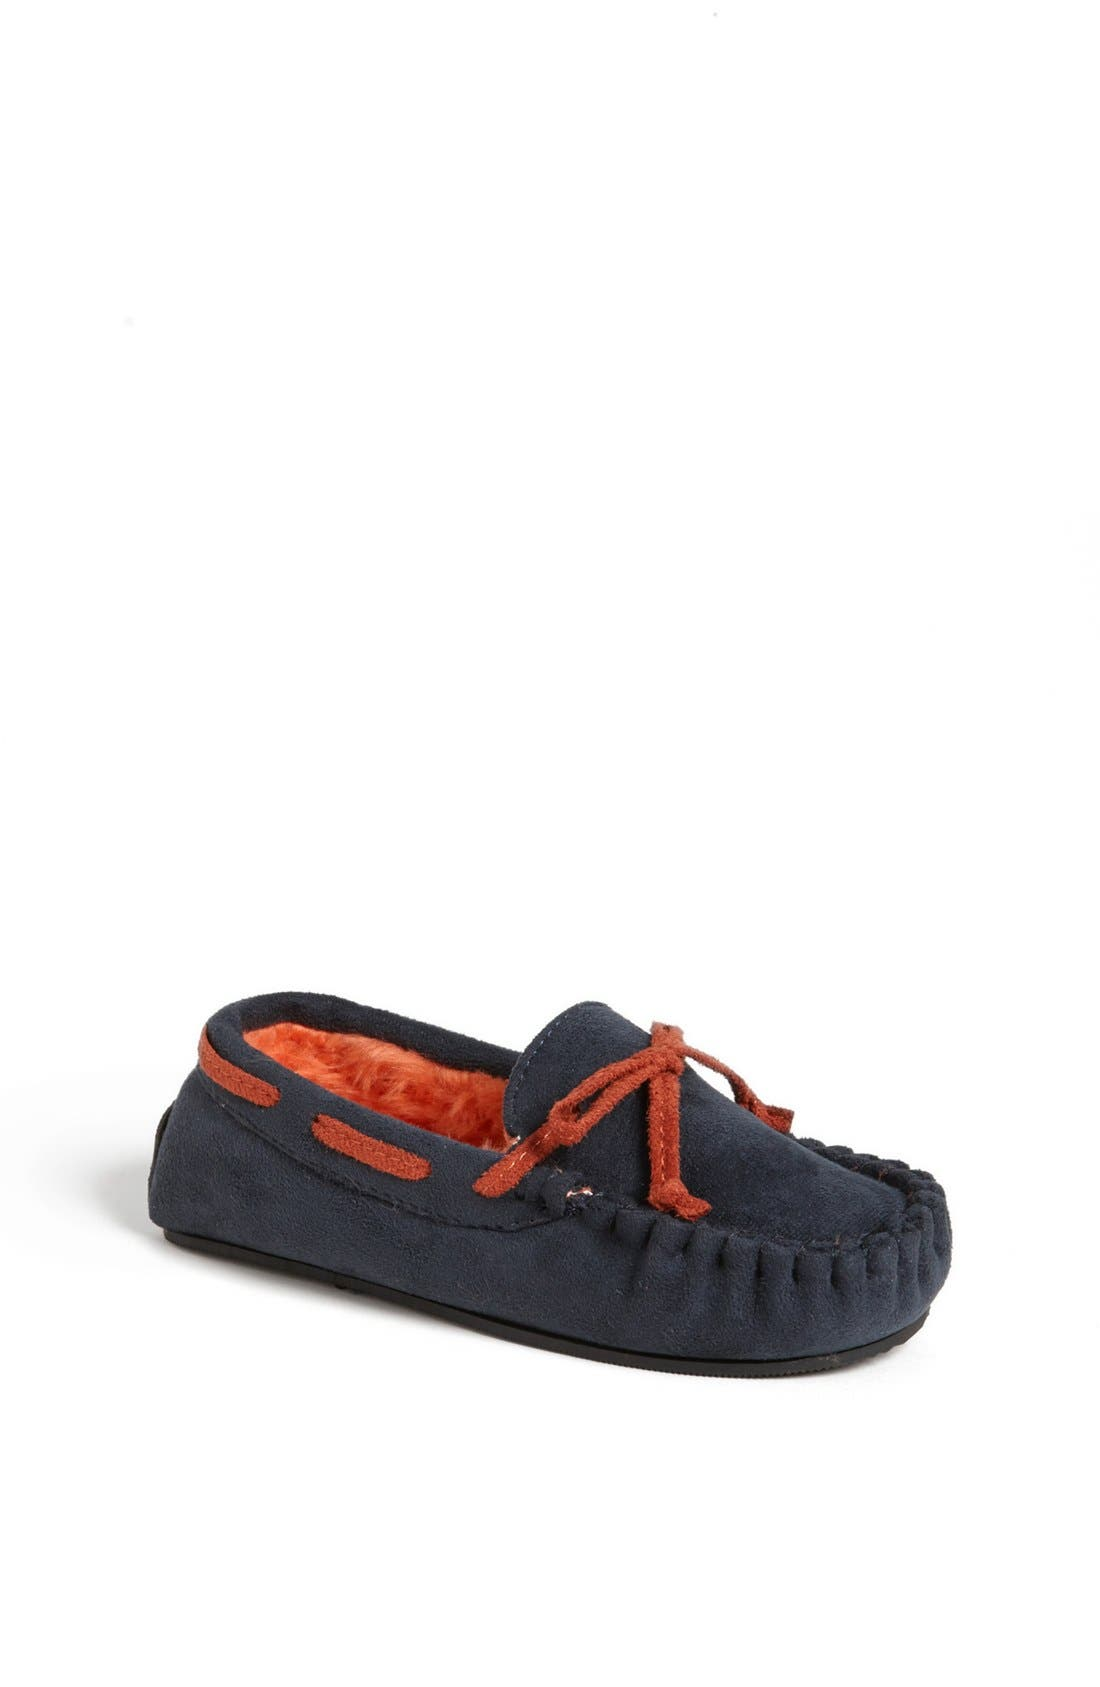 Main Image - Stride Rite Moc Stitched Slippers (Toddler & Little Kid)